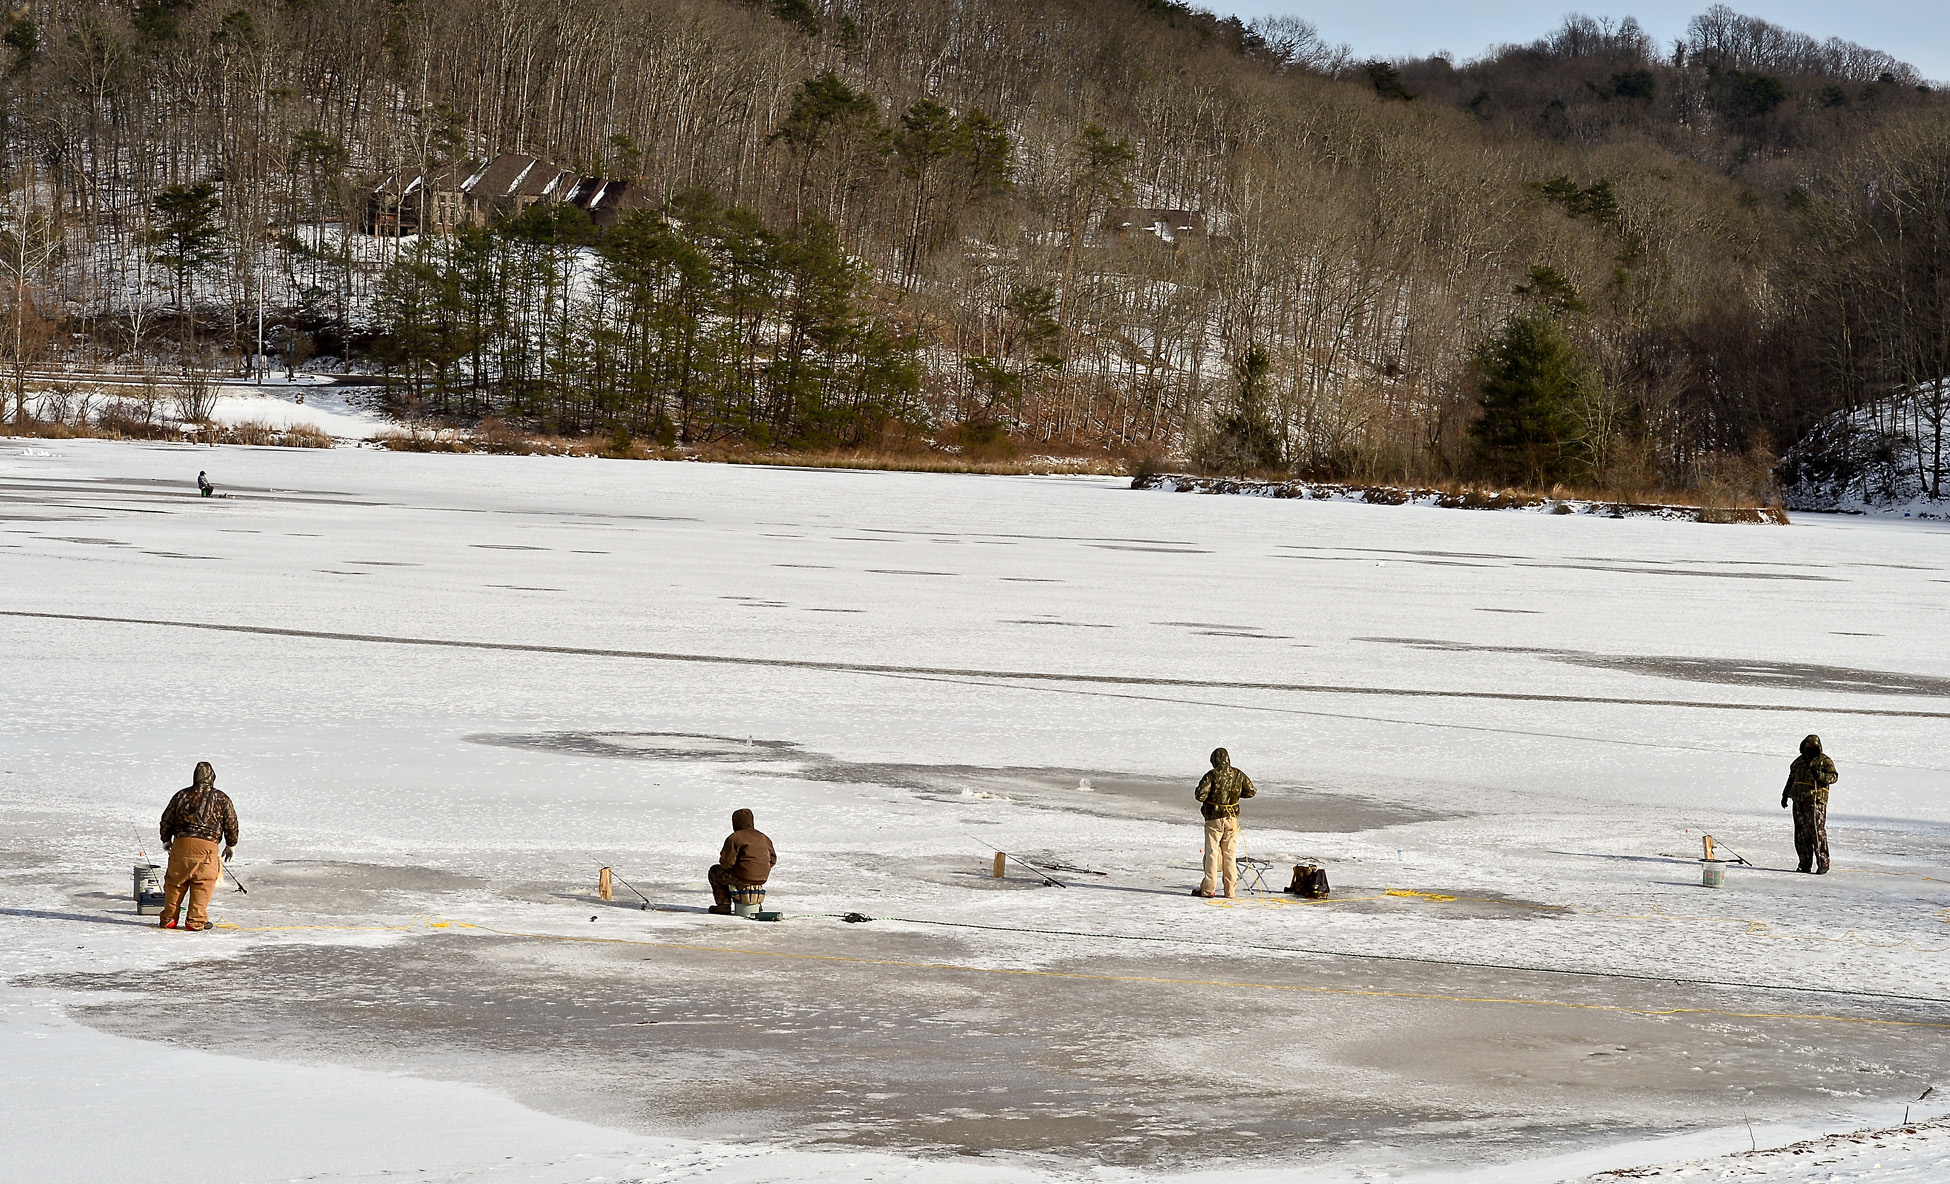 A group of ice fishers gather on the frozen surface of Ridenour Lake in Nitro, W.Va., Jan. 27, 2014.